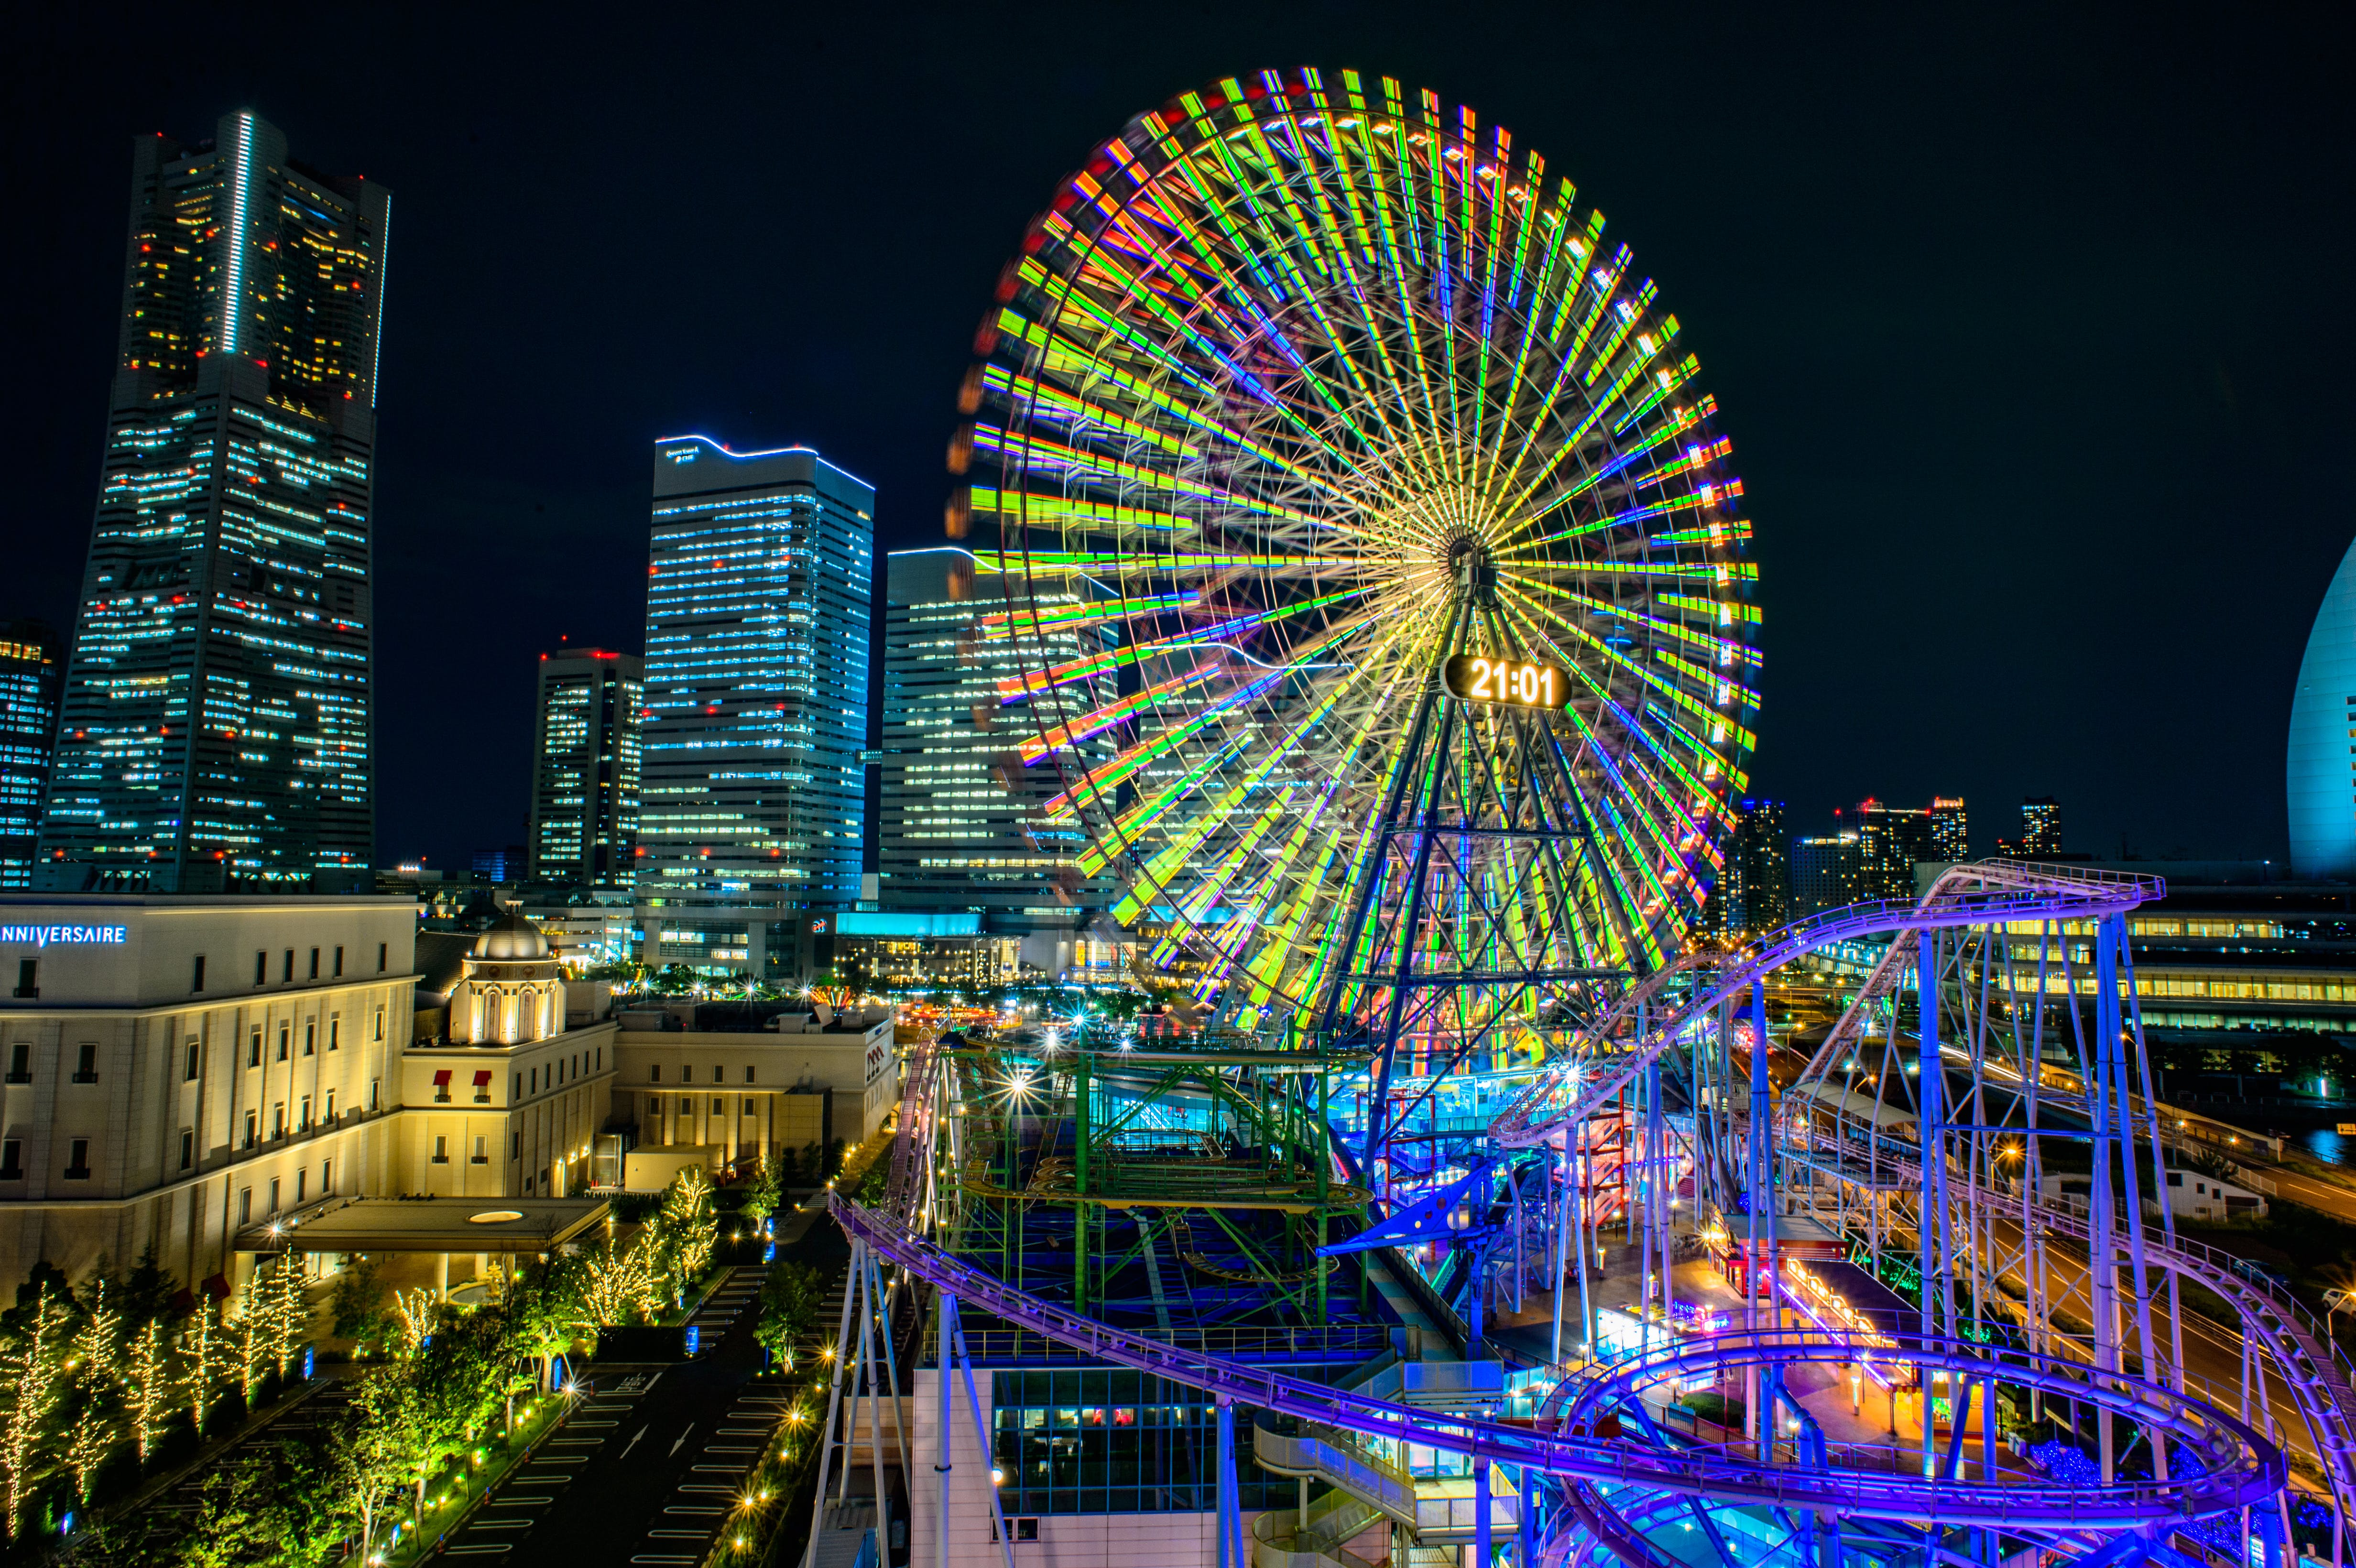 Multicolored Led Lights on Ferris Wheel and Roller Coaster during Nighttime